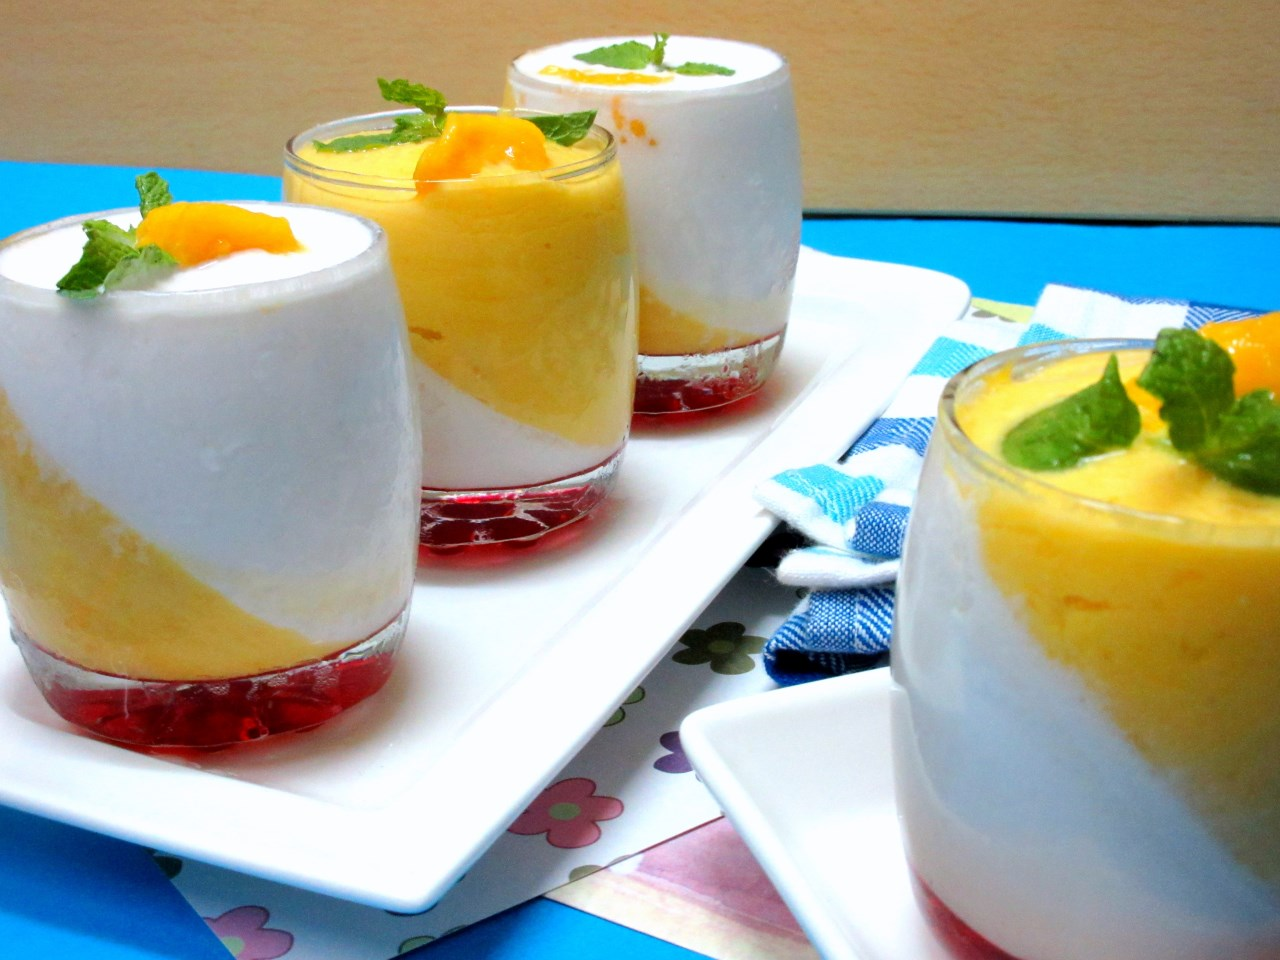 Mango and coconut panna cotta how to make panna cotta with agar agar - Panna cotta agar agar thermomix ...